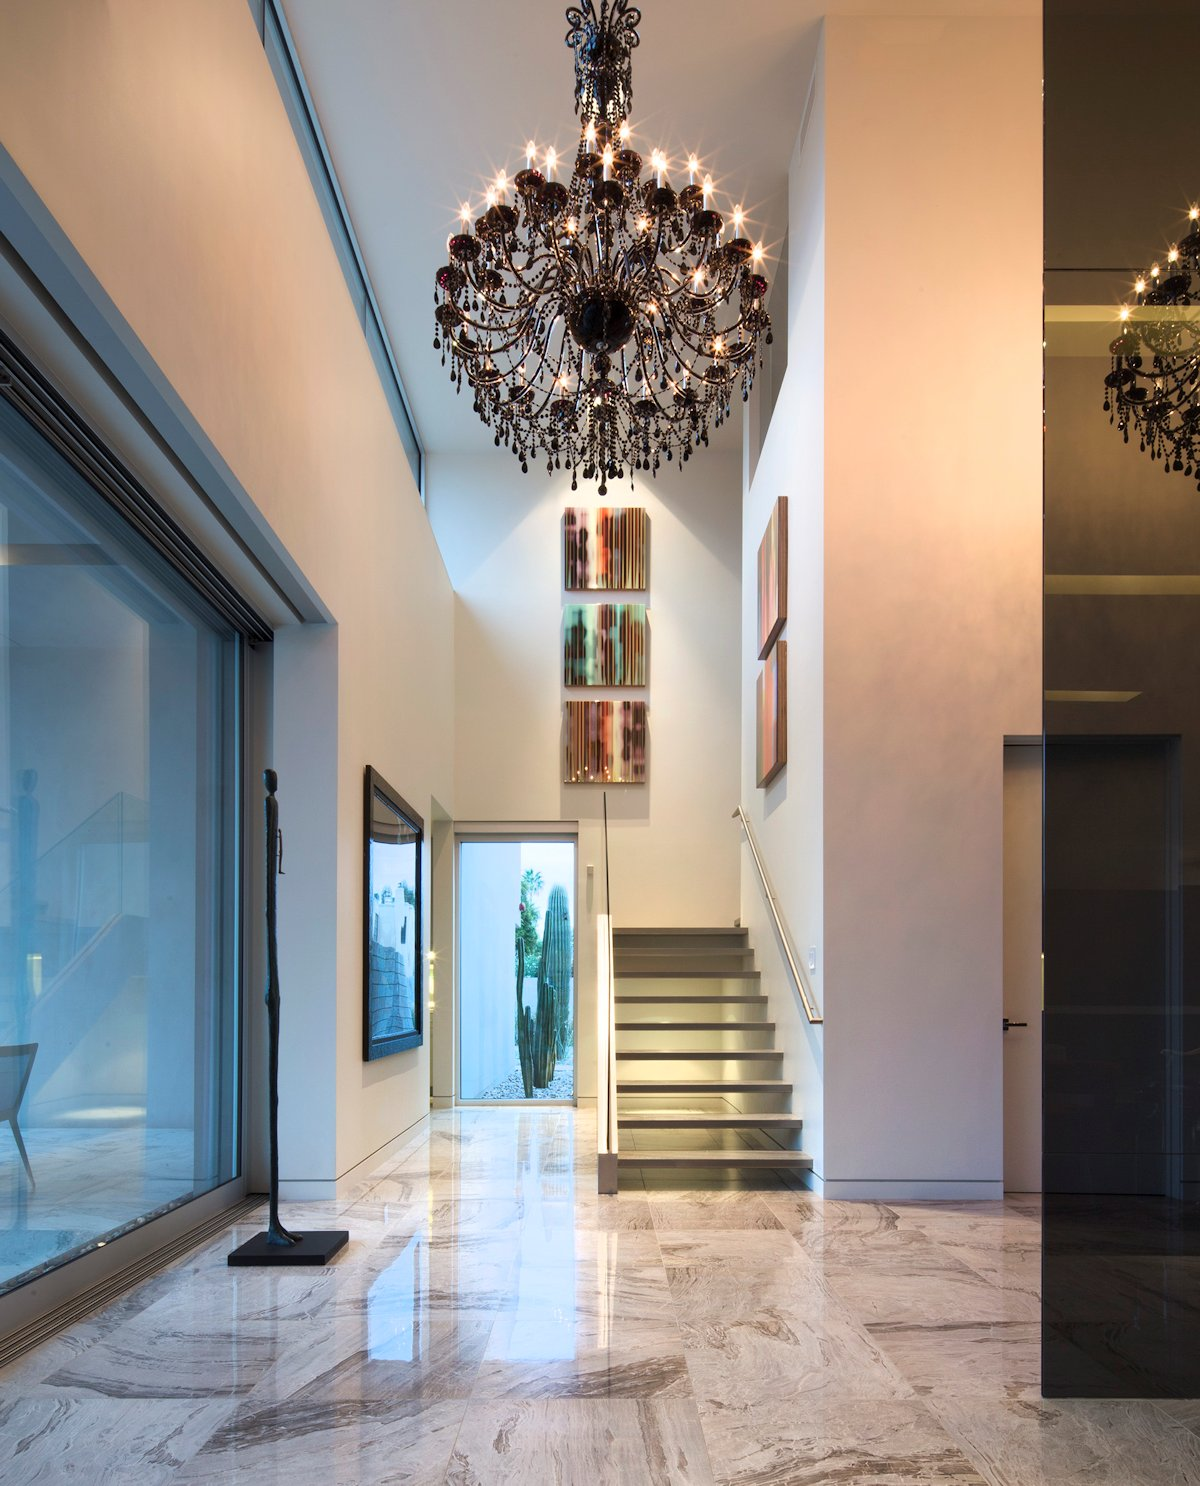 Modern Stairs, Hallway, Dark Chandelier, Mid-Century Modern Home in Scottsdale, Arizona